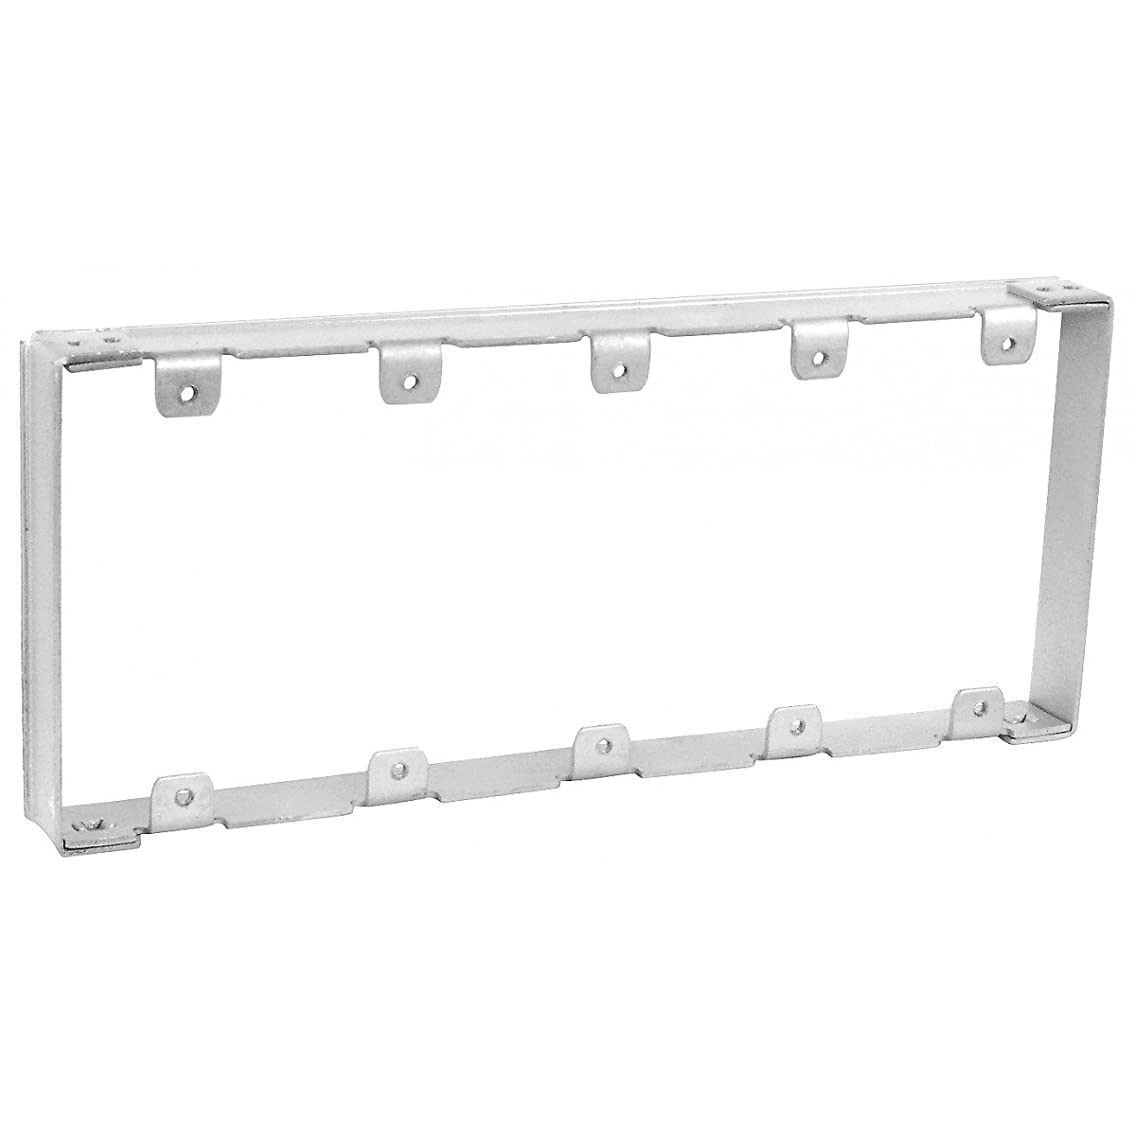 1 Pc, Zinc Plated Steel 5 Gang Multi-Gang Device Extender, 1/2 In. Raised to Finished Wall Surface